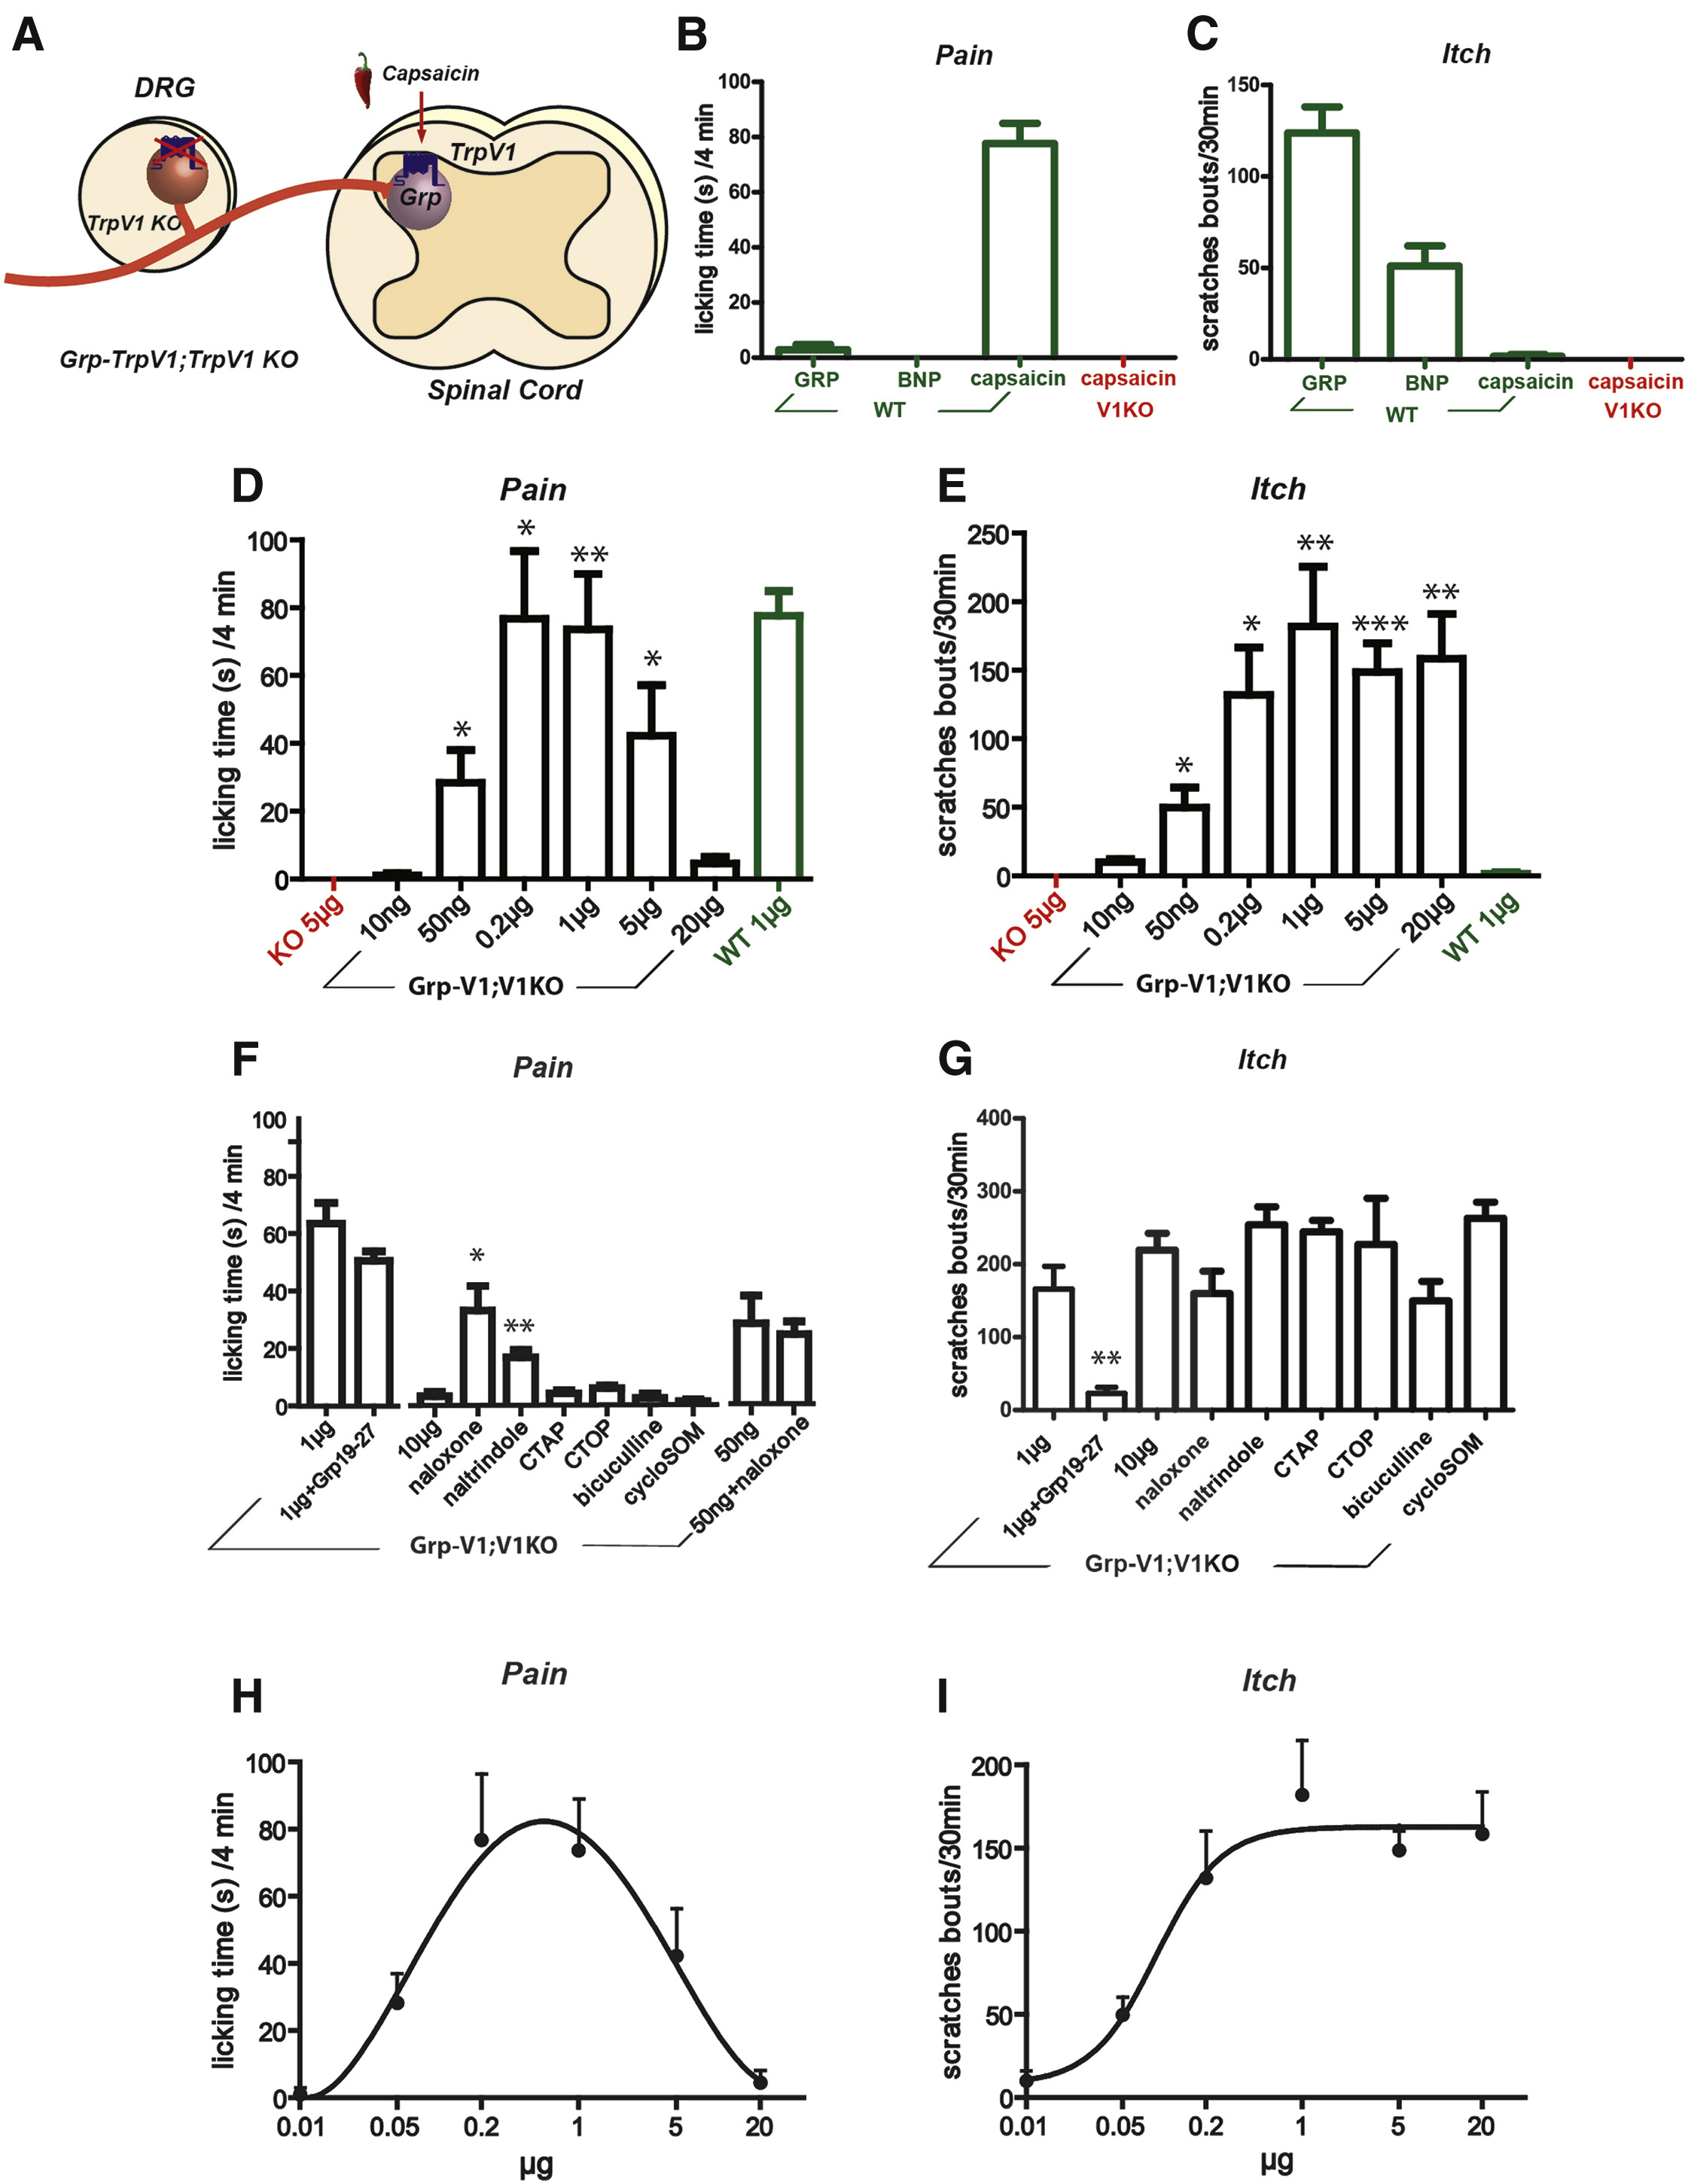 Leaky Gate Model Intensity Dependent Coding Of Pain And